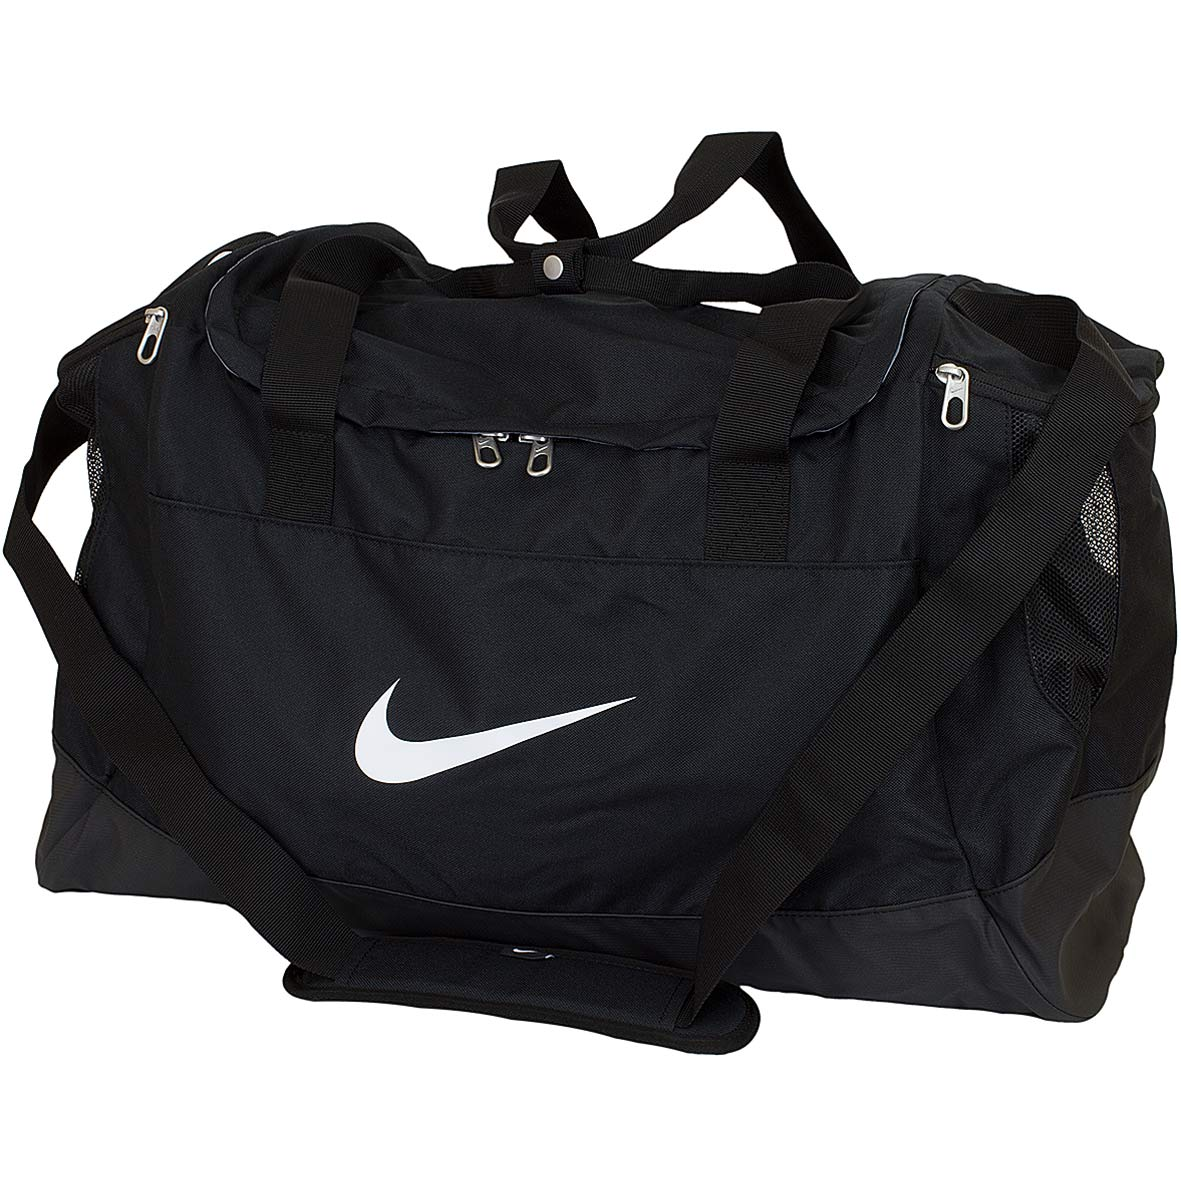 nike tasche club team duffel large schwarz wei hier. Black Bedroom Furniture Sets. Home Design Ideas